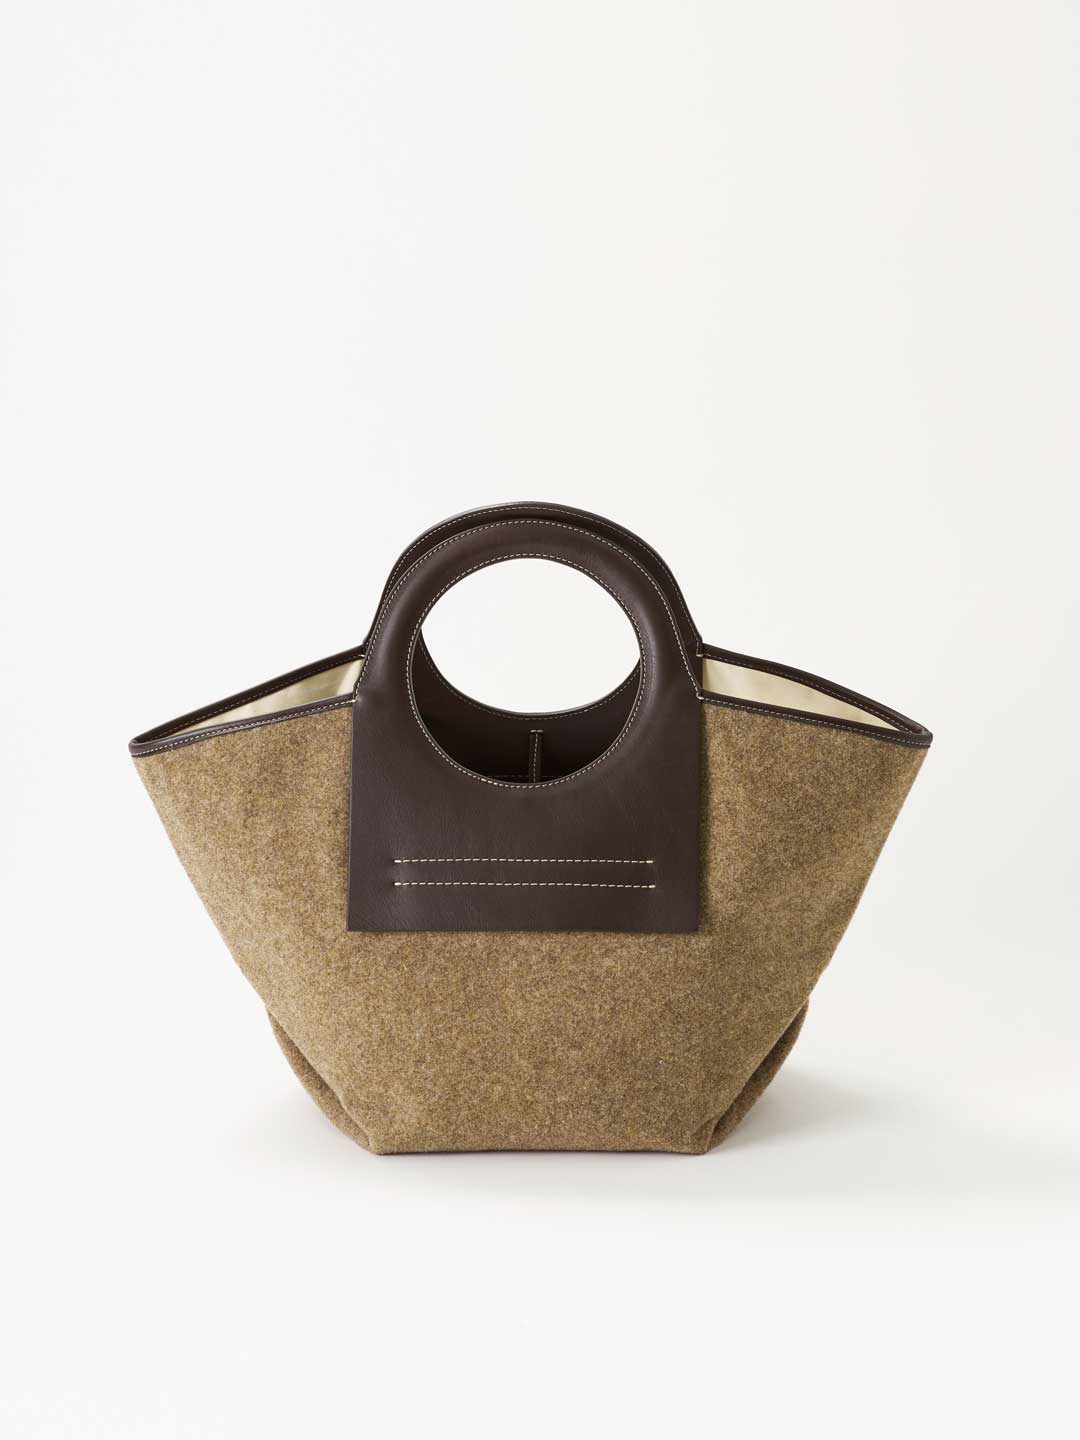 CALA SMALL Leather Canvas Tote - Brown